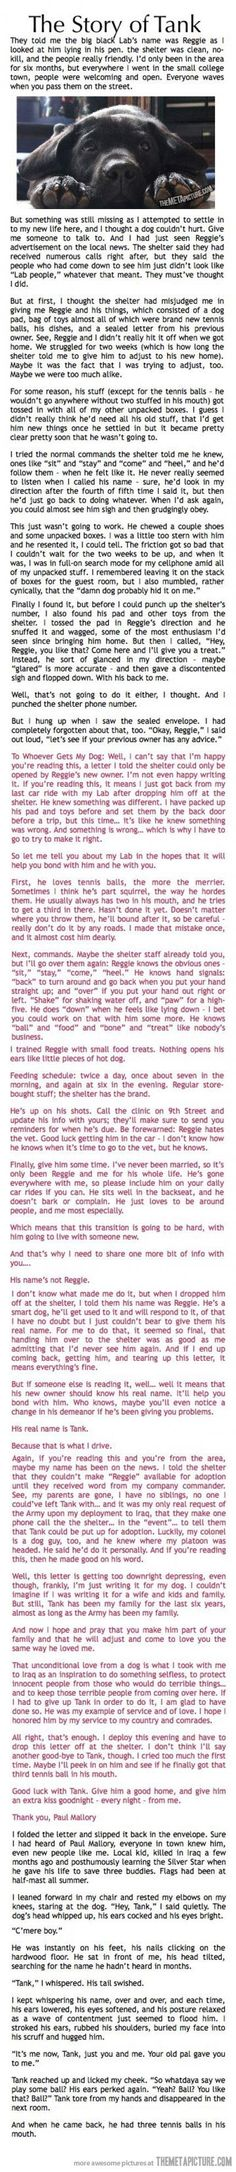 The Story of Tank! I just cried my eyes out...only those that have a deeper love for their doggies truly understand!!! ❤ My Sadie, Oliver & Wrecker much more than you can imagine.